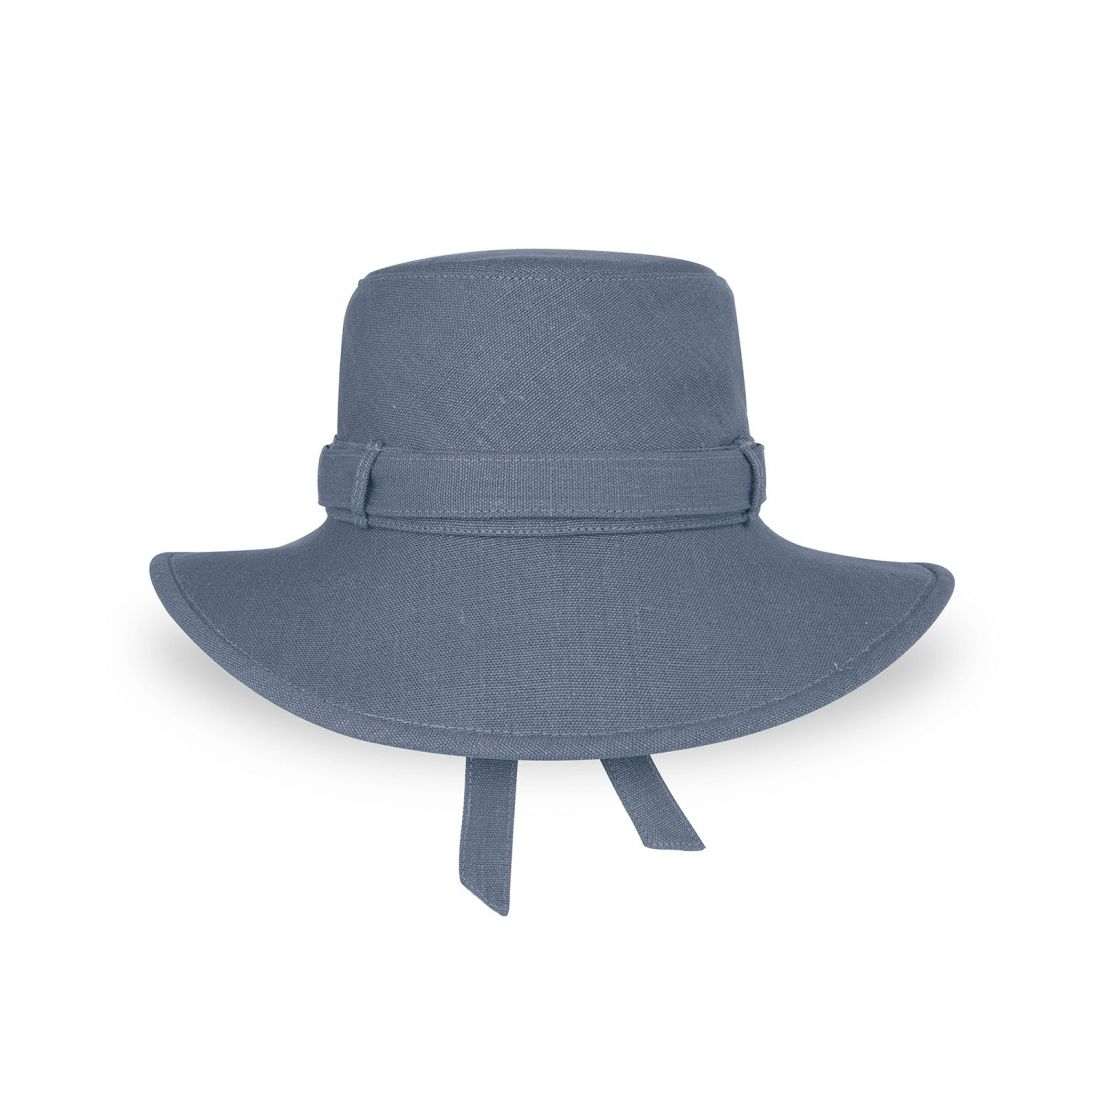 Tilley TH9 Melanie Hemp Sun Hat